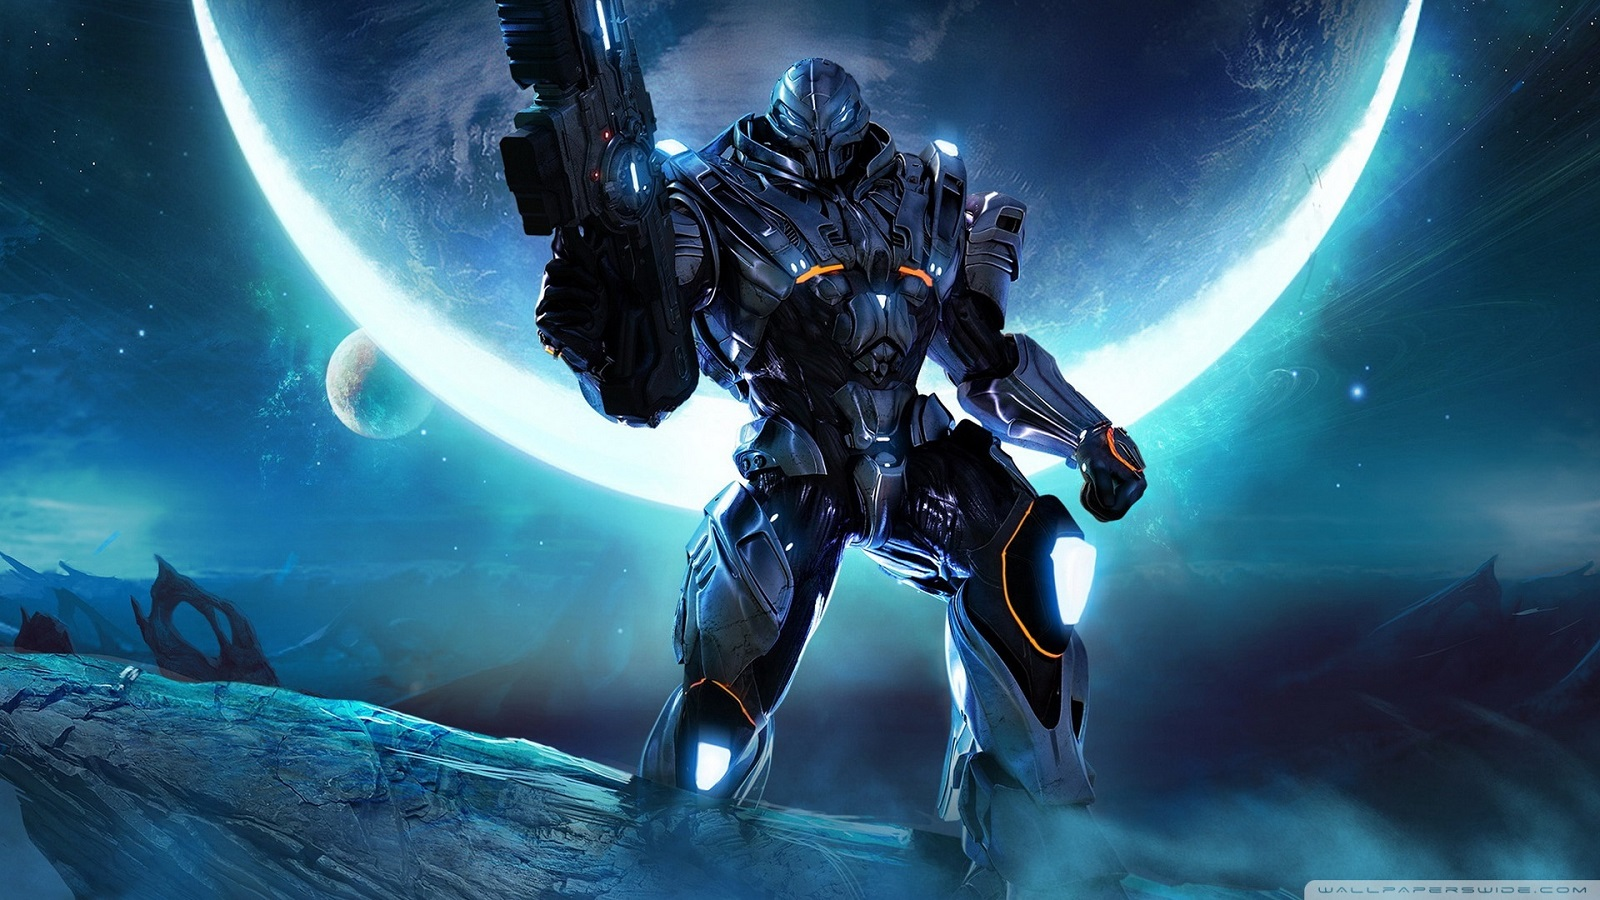 Halo 5 Guardians 2015 Game Wallpapers Best Wallpapers FanDownload 1600x900